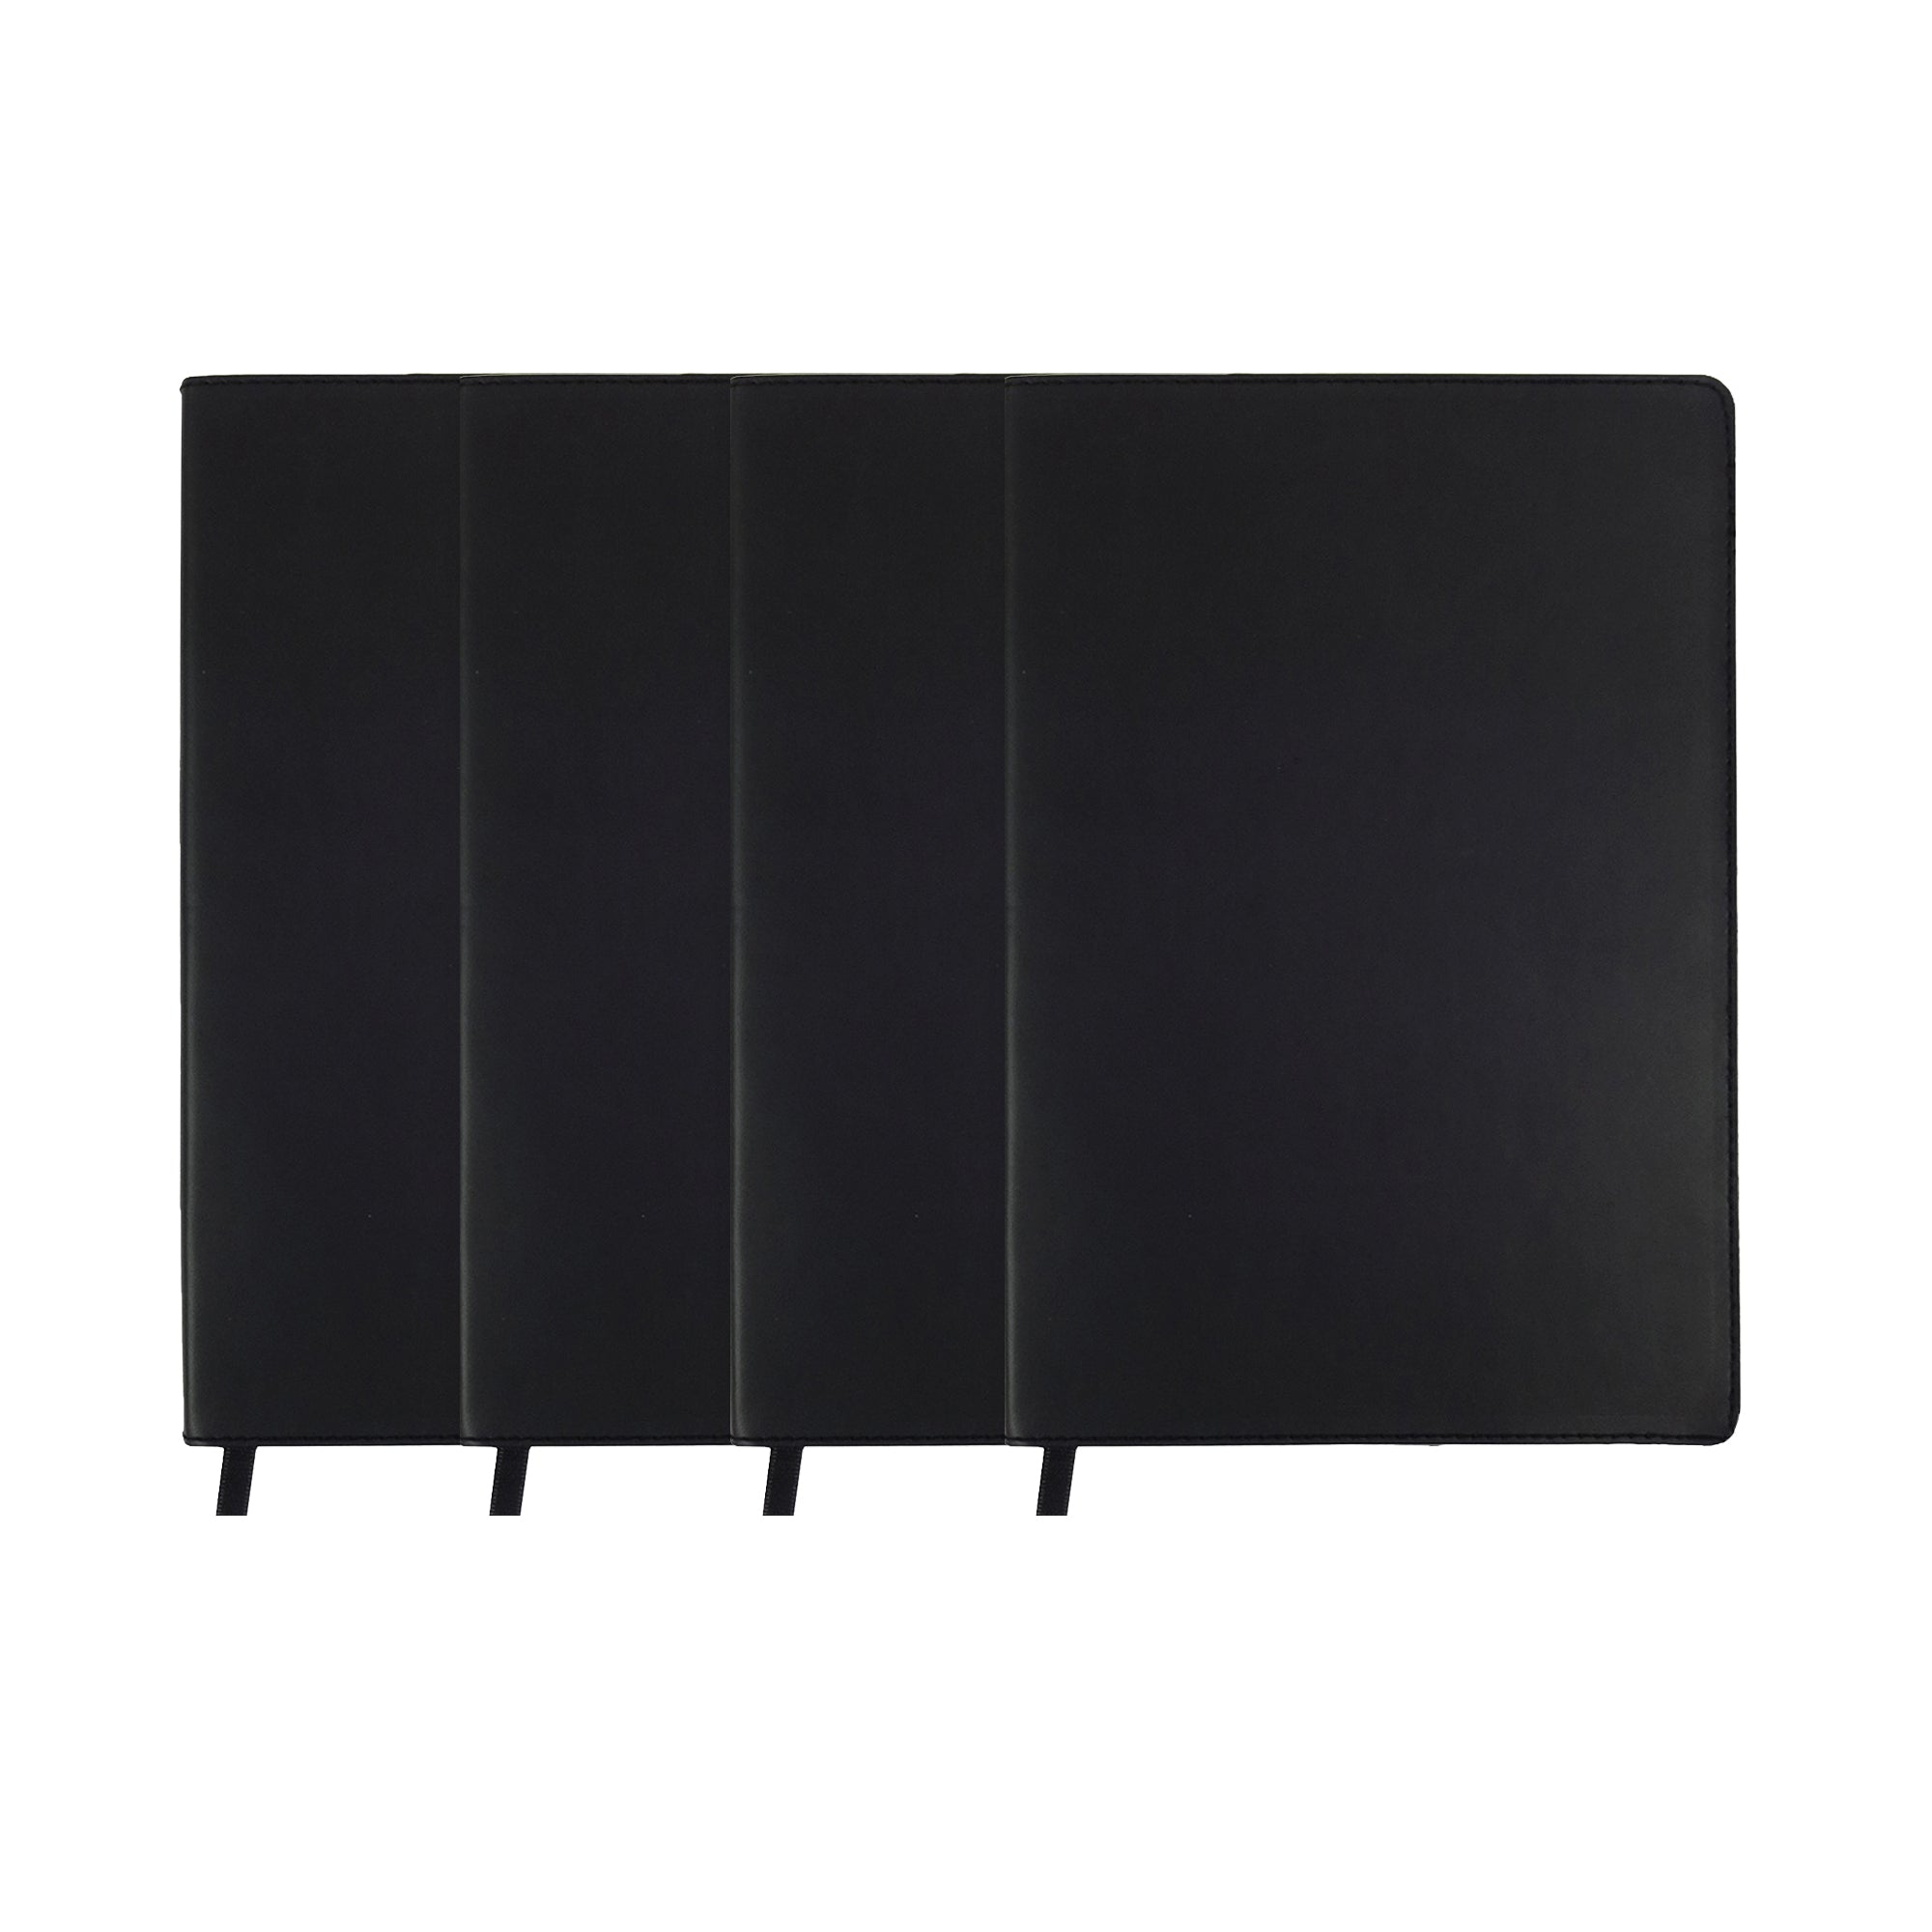 A5 PU Softcover Black - Set of 4